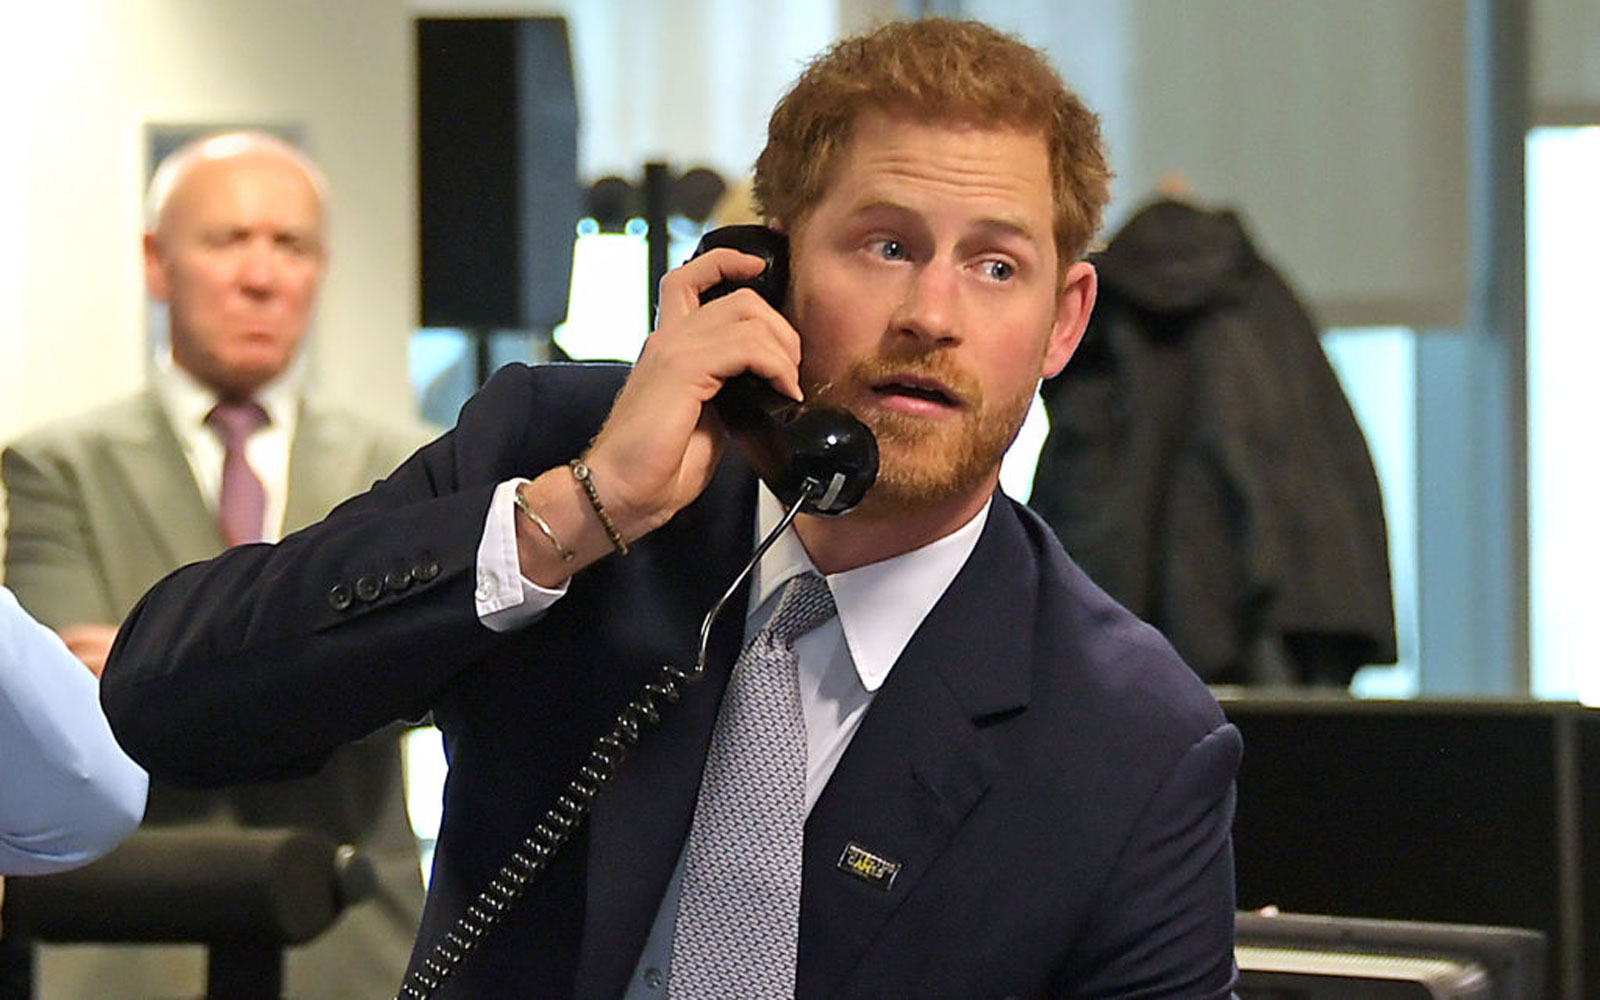 Prince Harry Helps Close Deal Worth More Than $1 Billion for Charity Event Honoring 9/11 Victims